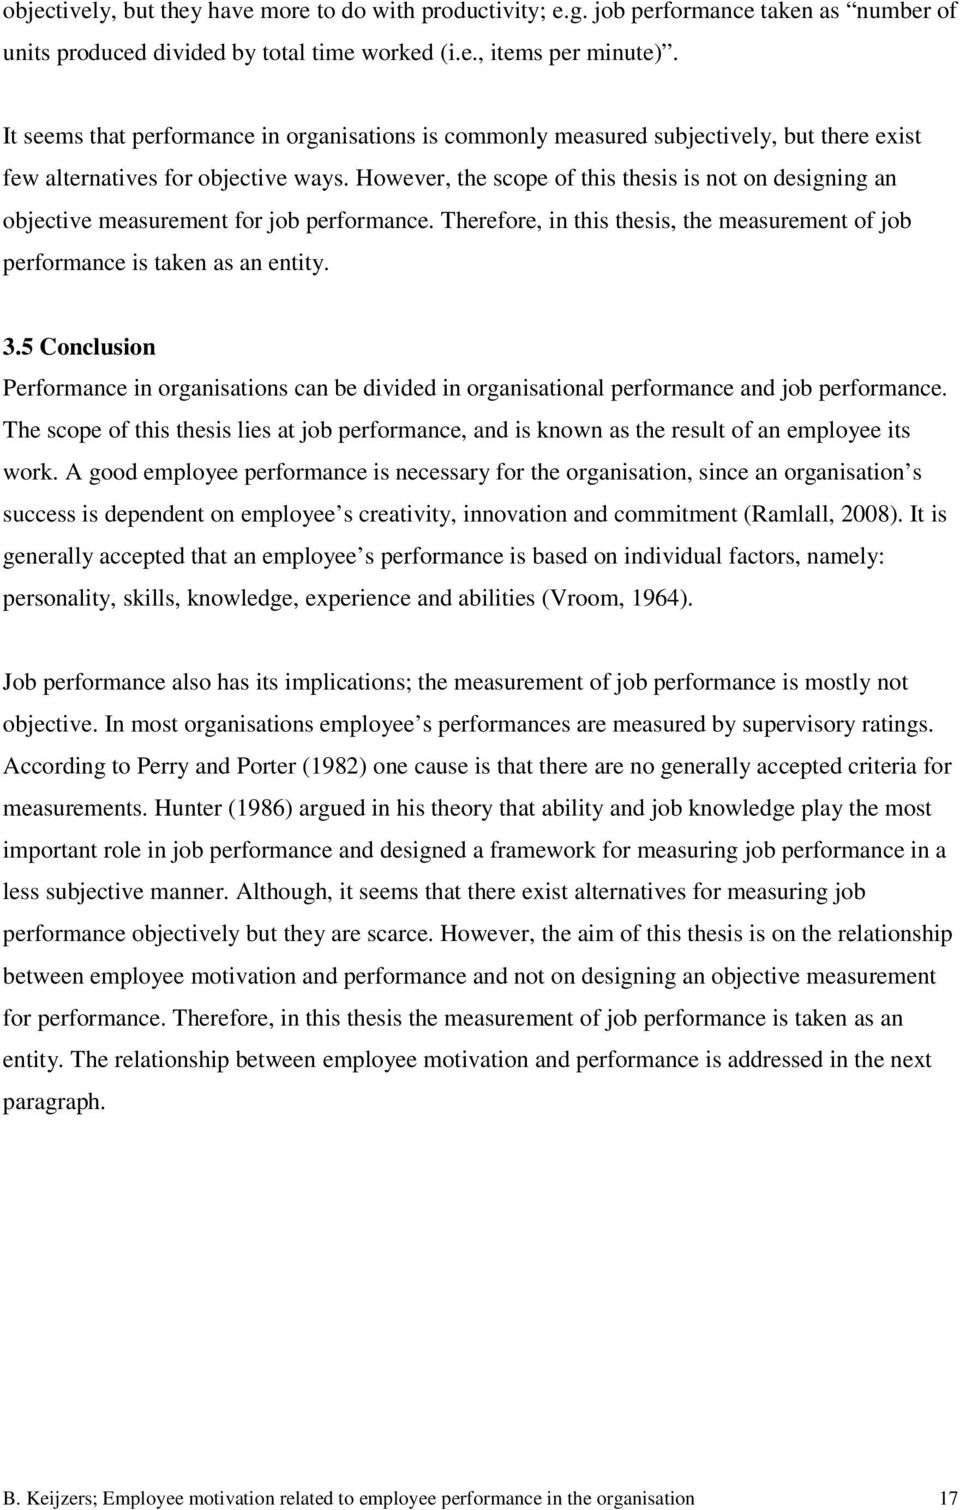 thesis on employee motivation and performance